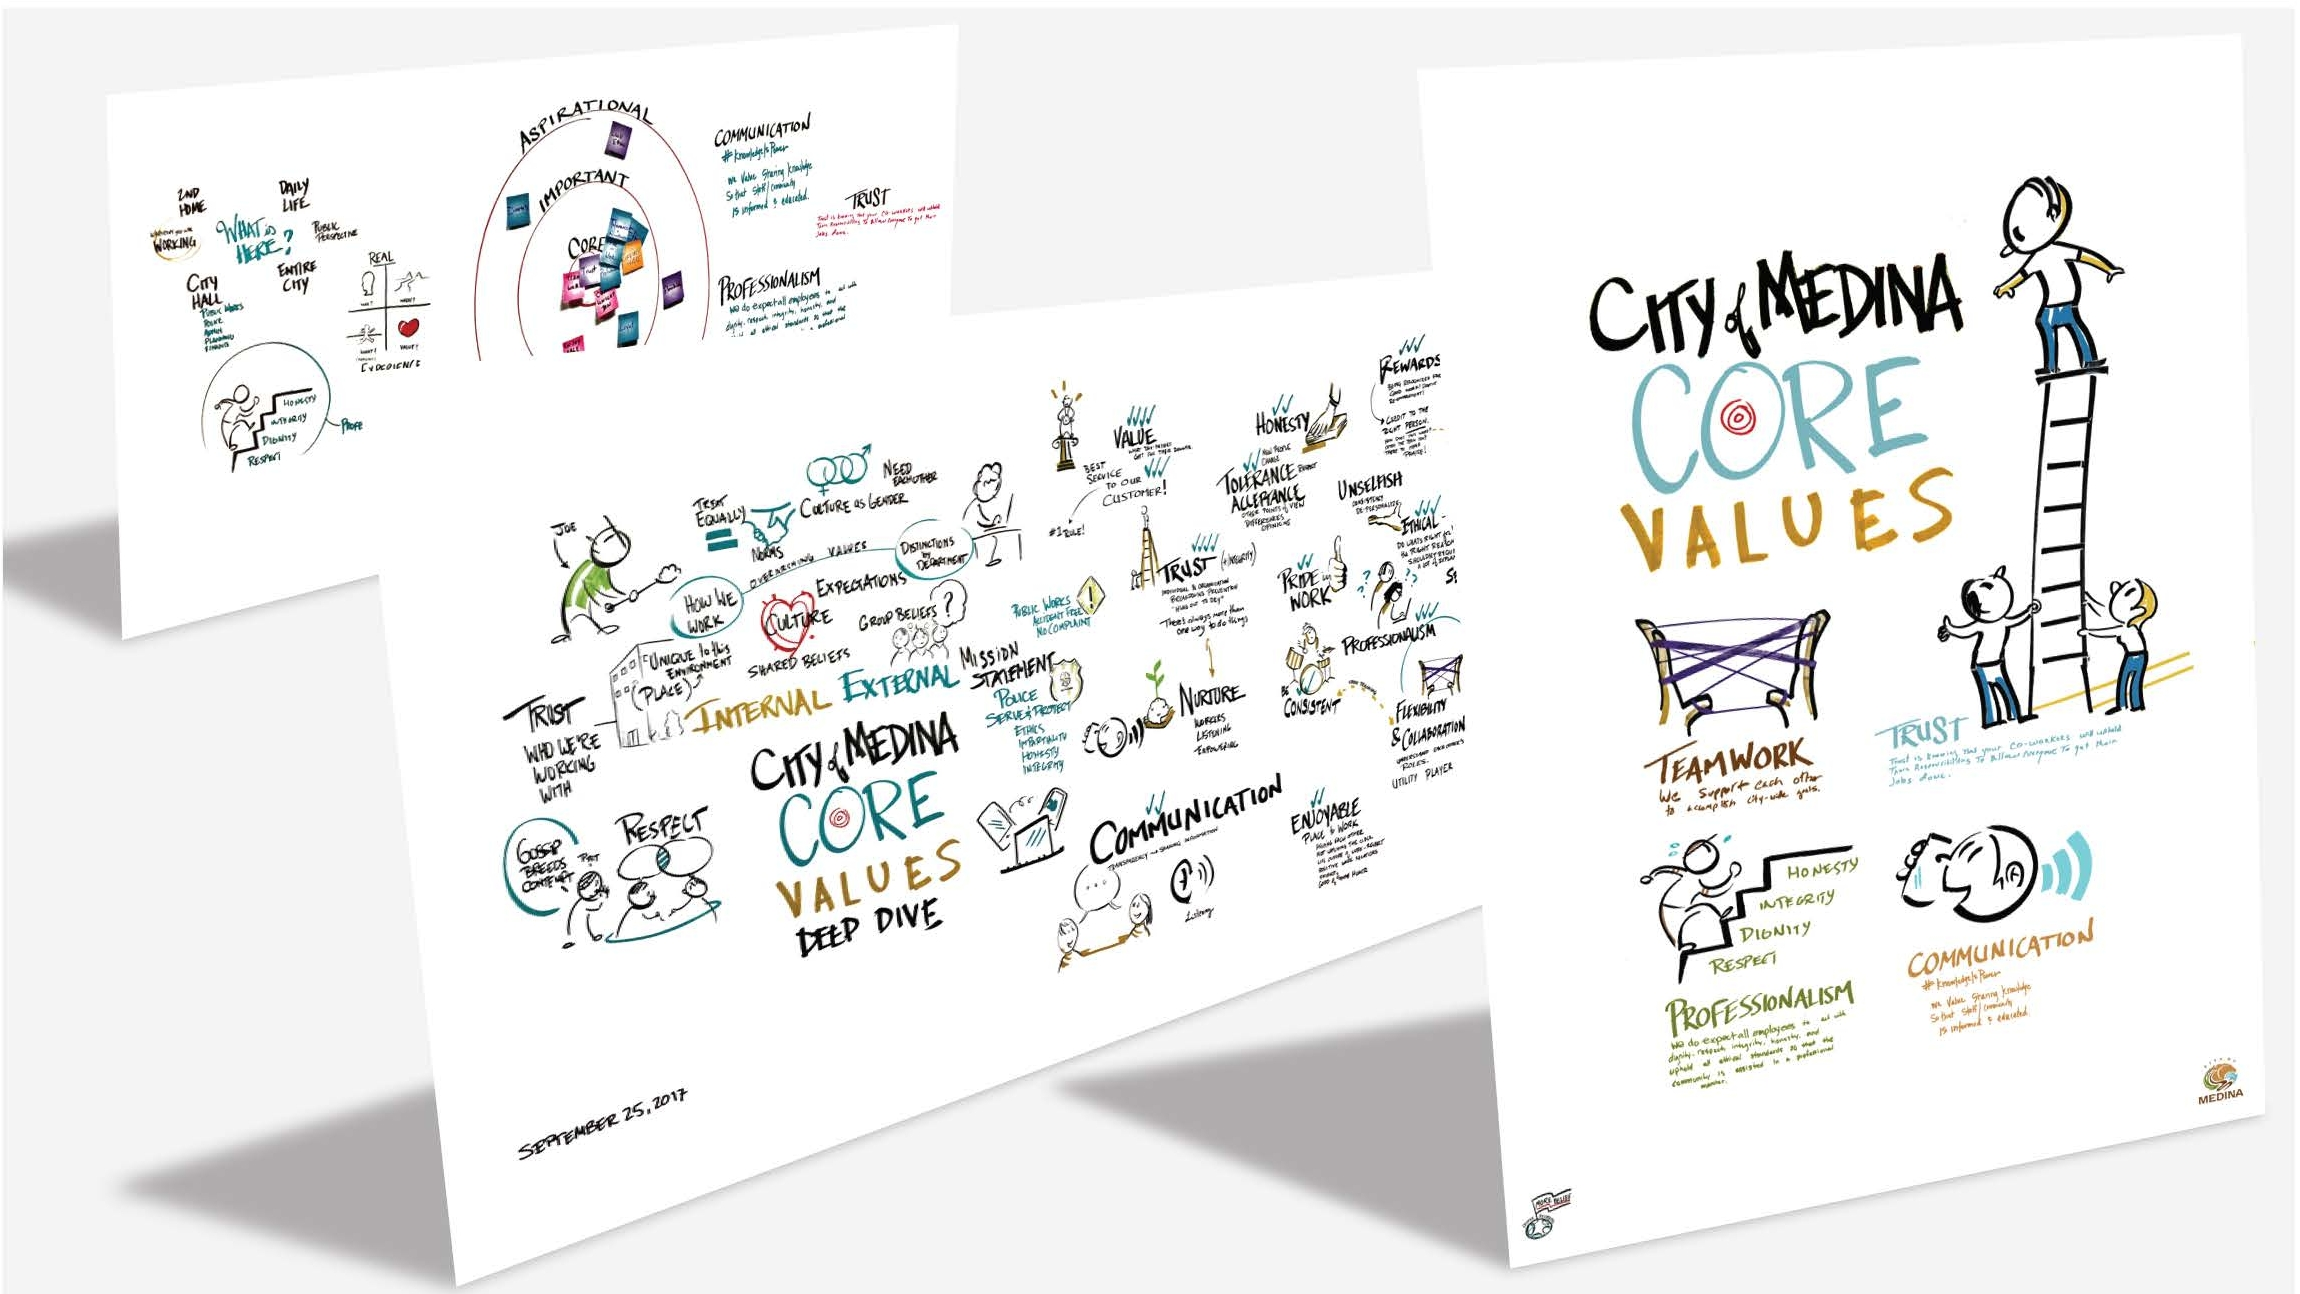 Graphic Facilitation as Poster Campaign - Client: City of Medina, Minnesota Core Values Deep DiveAnyone can brainstorm some core values that sound good, but the City of Medina wanted to connect their real-life behaviors to their values. More Belief created a poster based on the images created live, and the real hand-writing of the contributors in the room as a way of tying an artifact to their commitments.